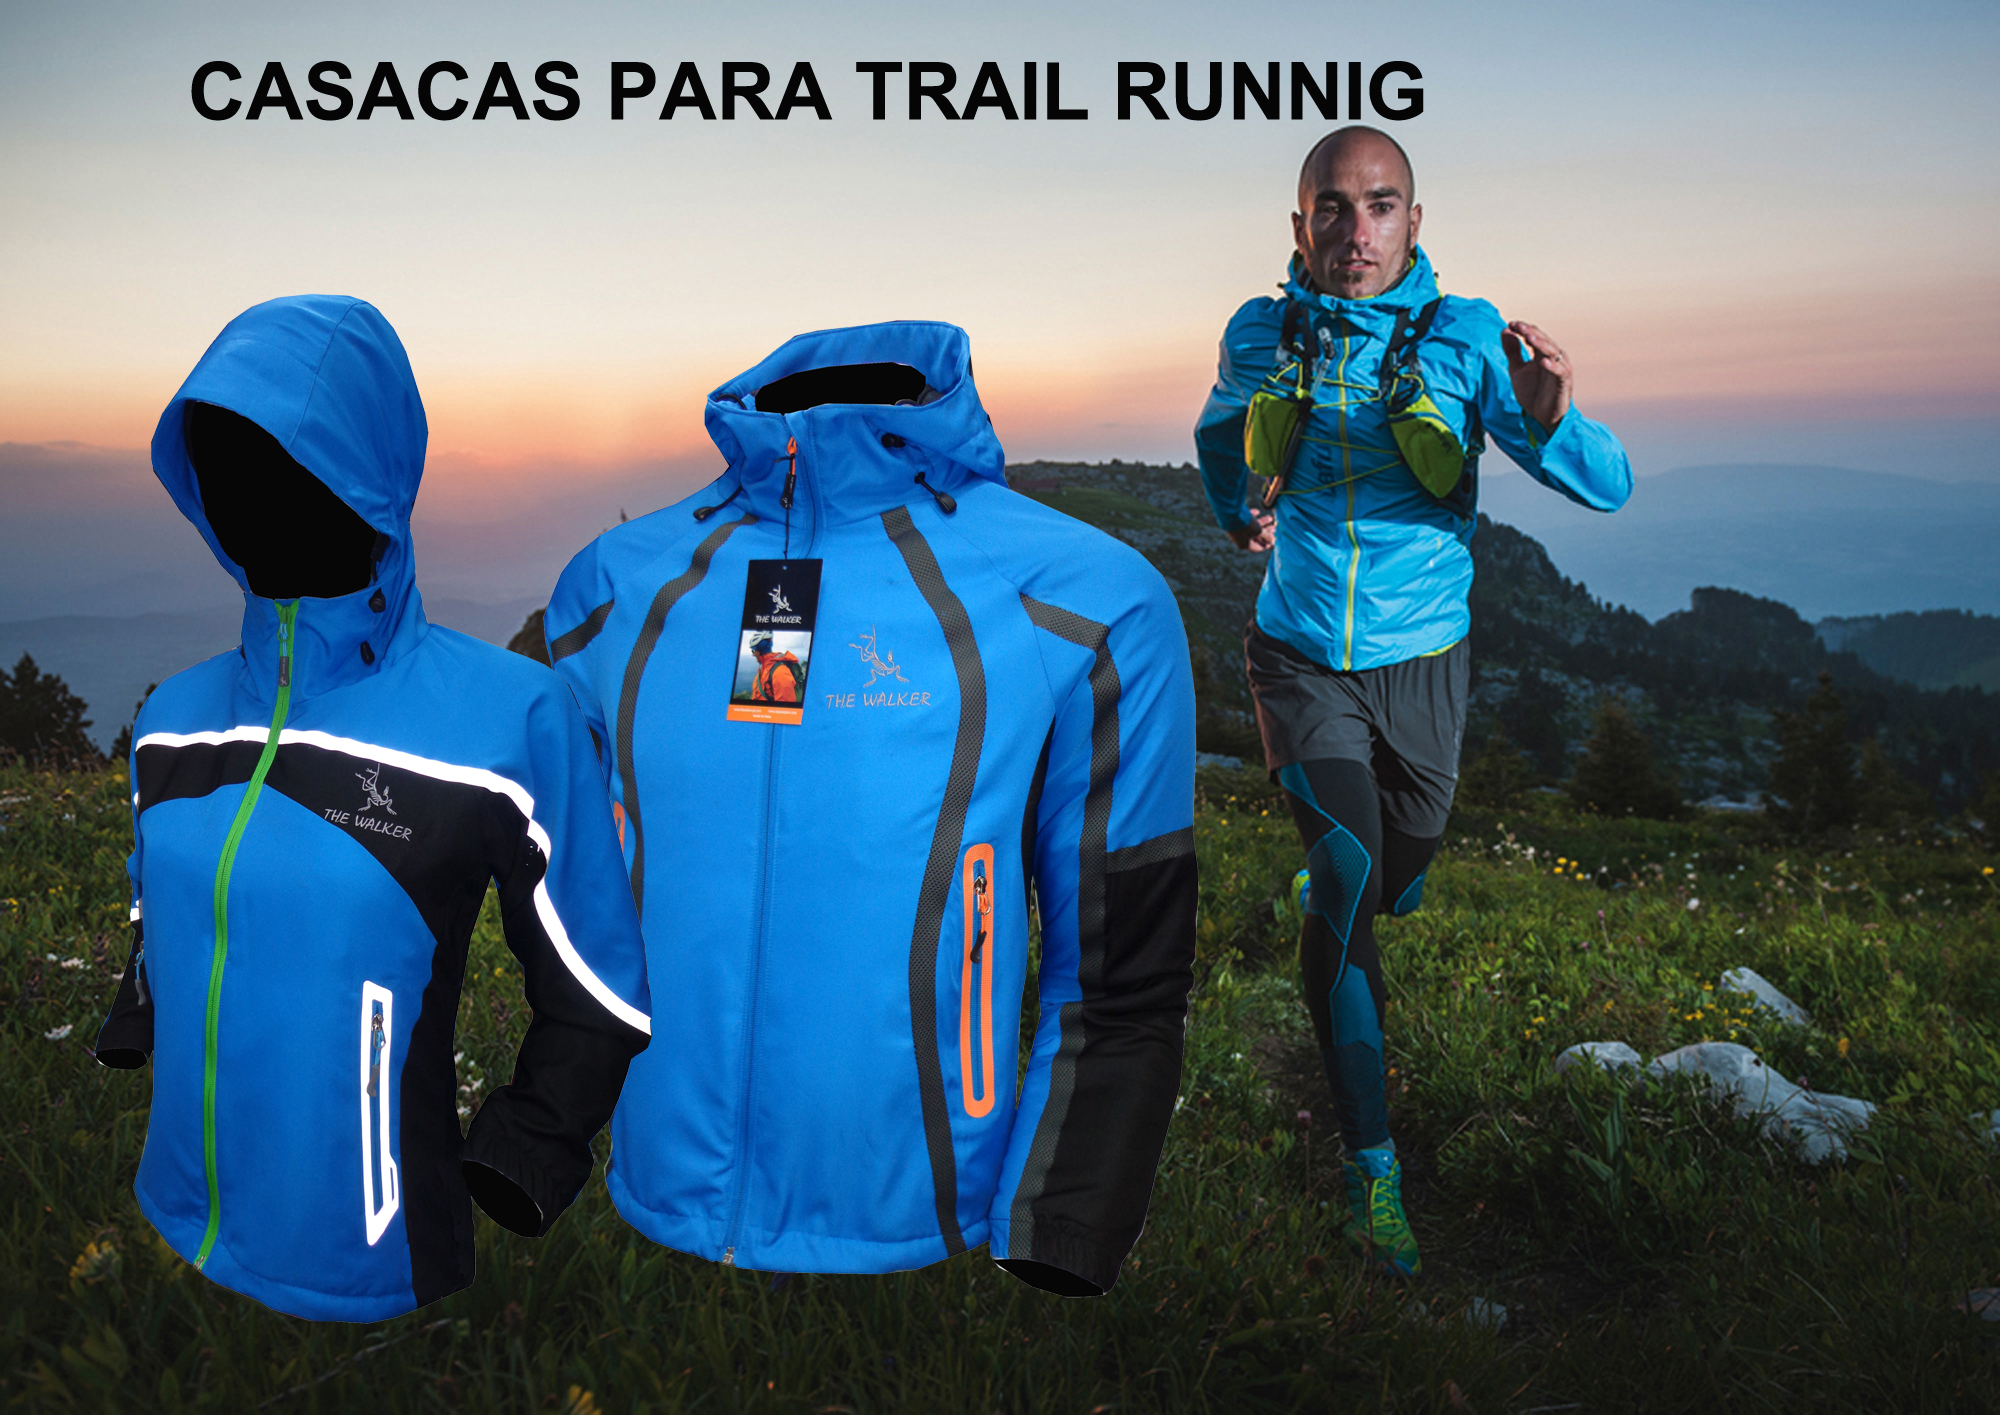 JACKETS FOR TRAIL RUNNING